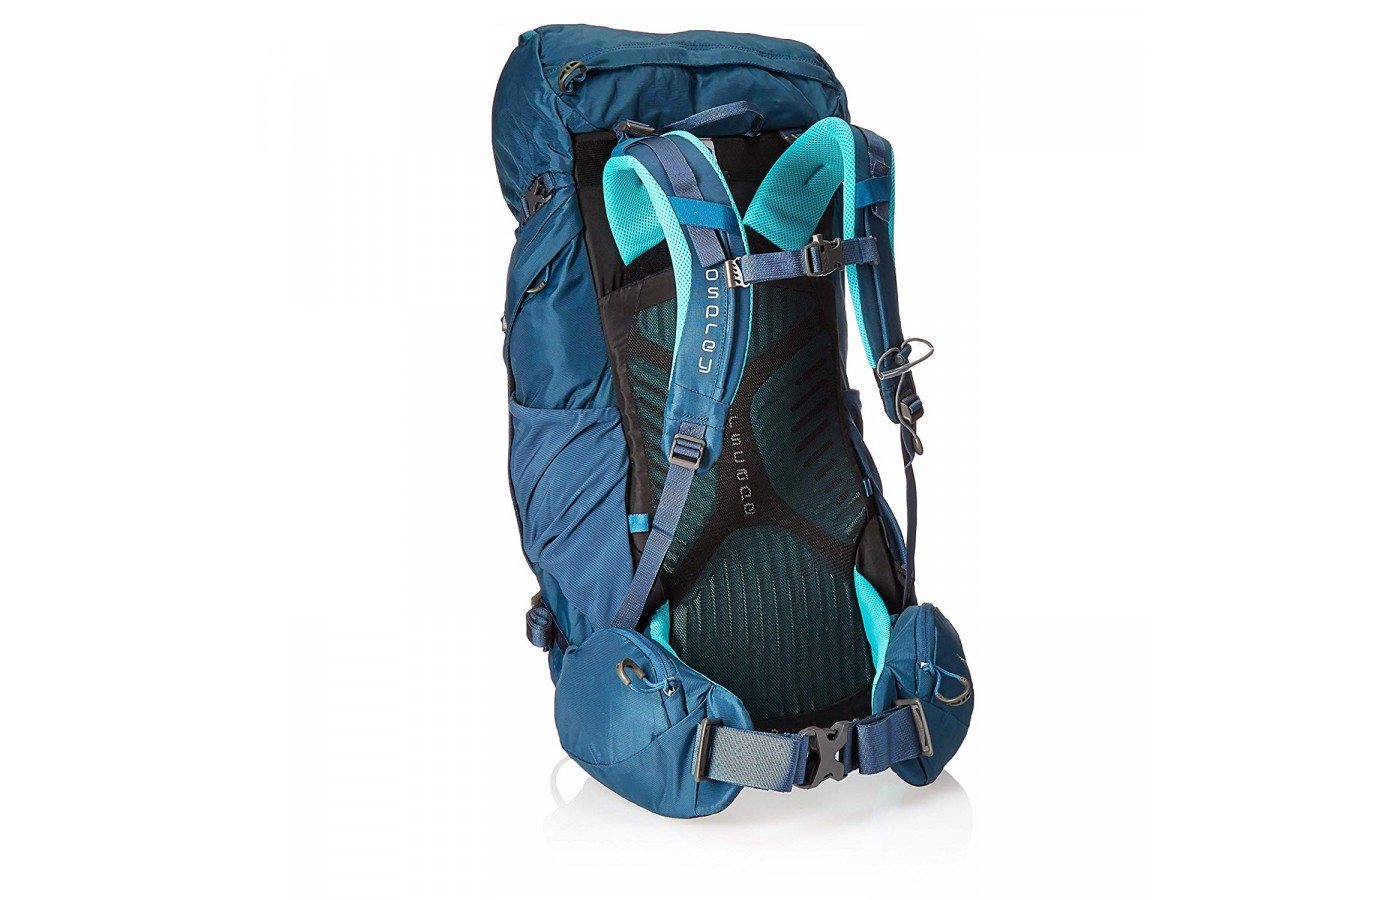 The Osprey Kyte 36 has an adjustable harness which allows for a more customized fit.